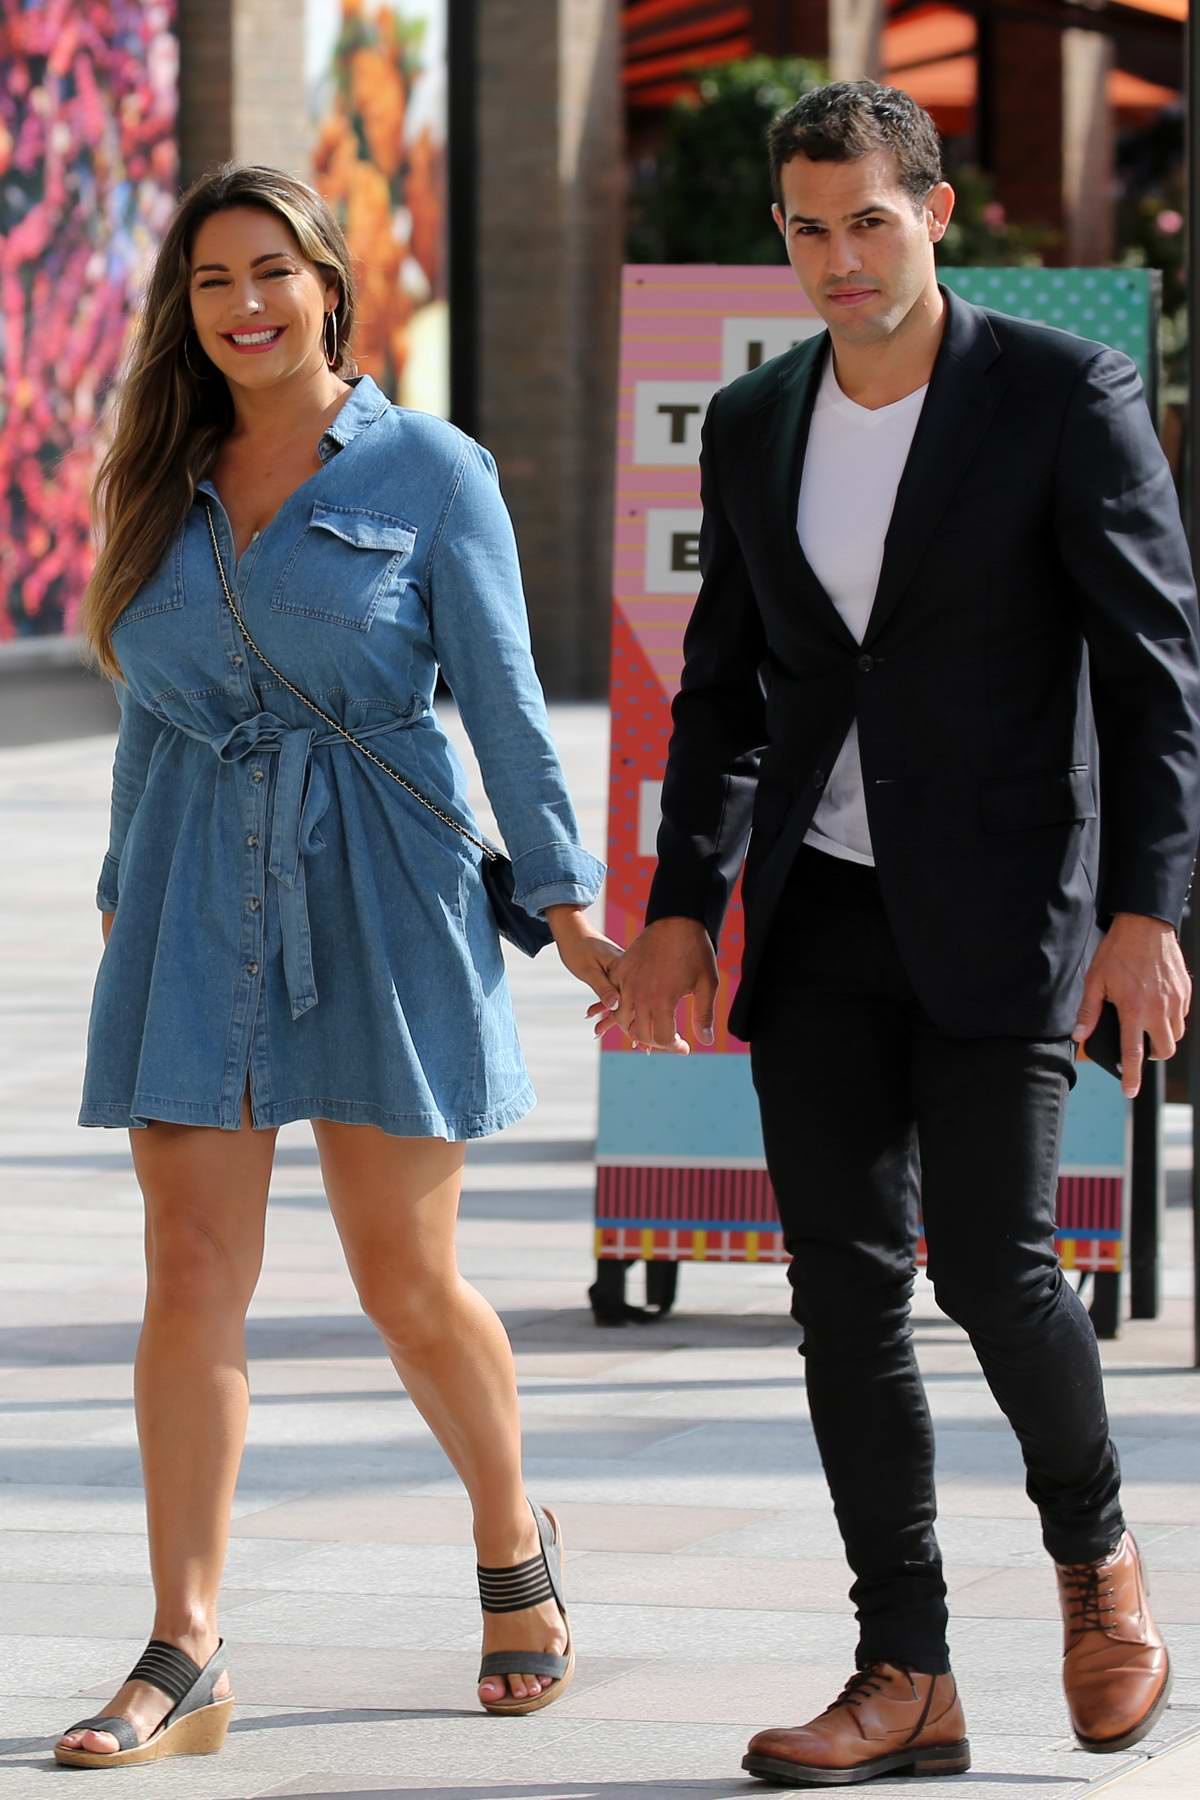 Kelly Brook is all smiles as she leaves ITV Studios holding hands with boyfriend Jeremy Parisi in London, UK